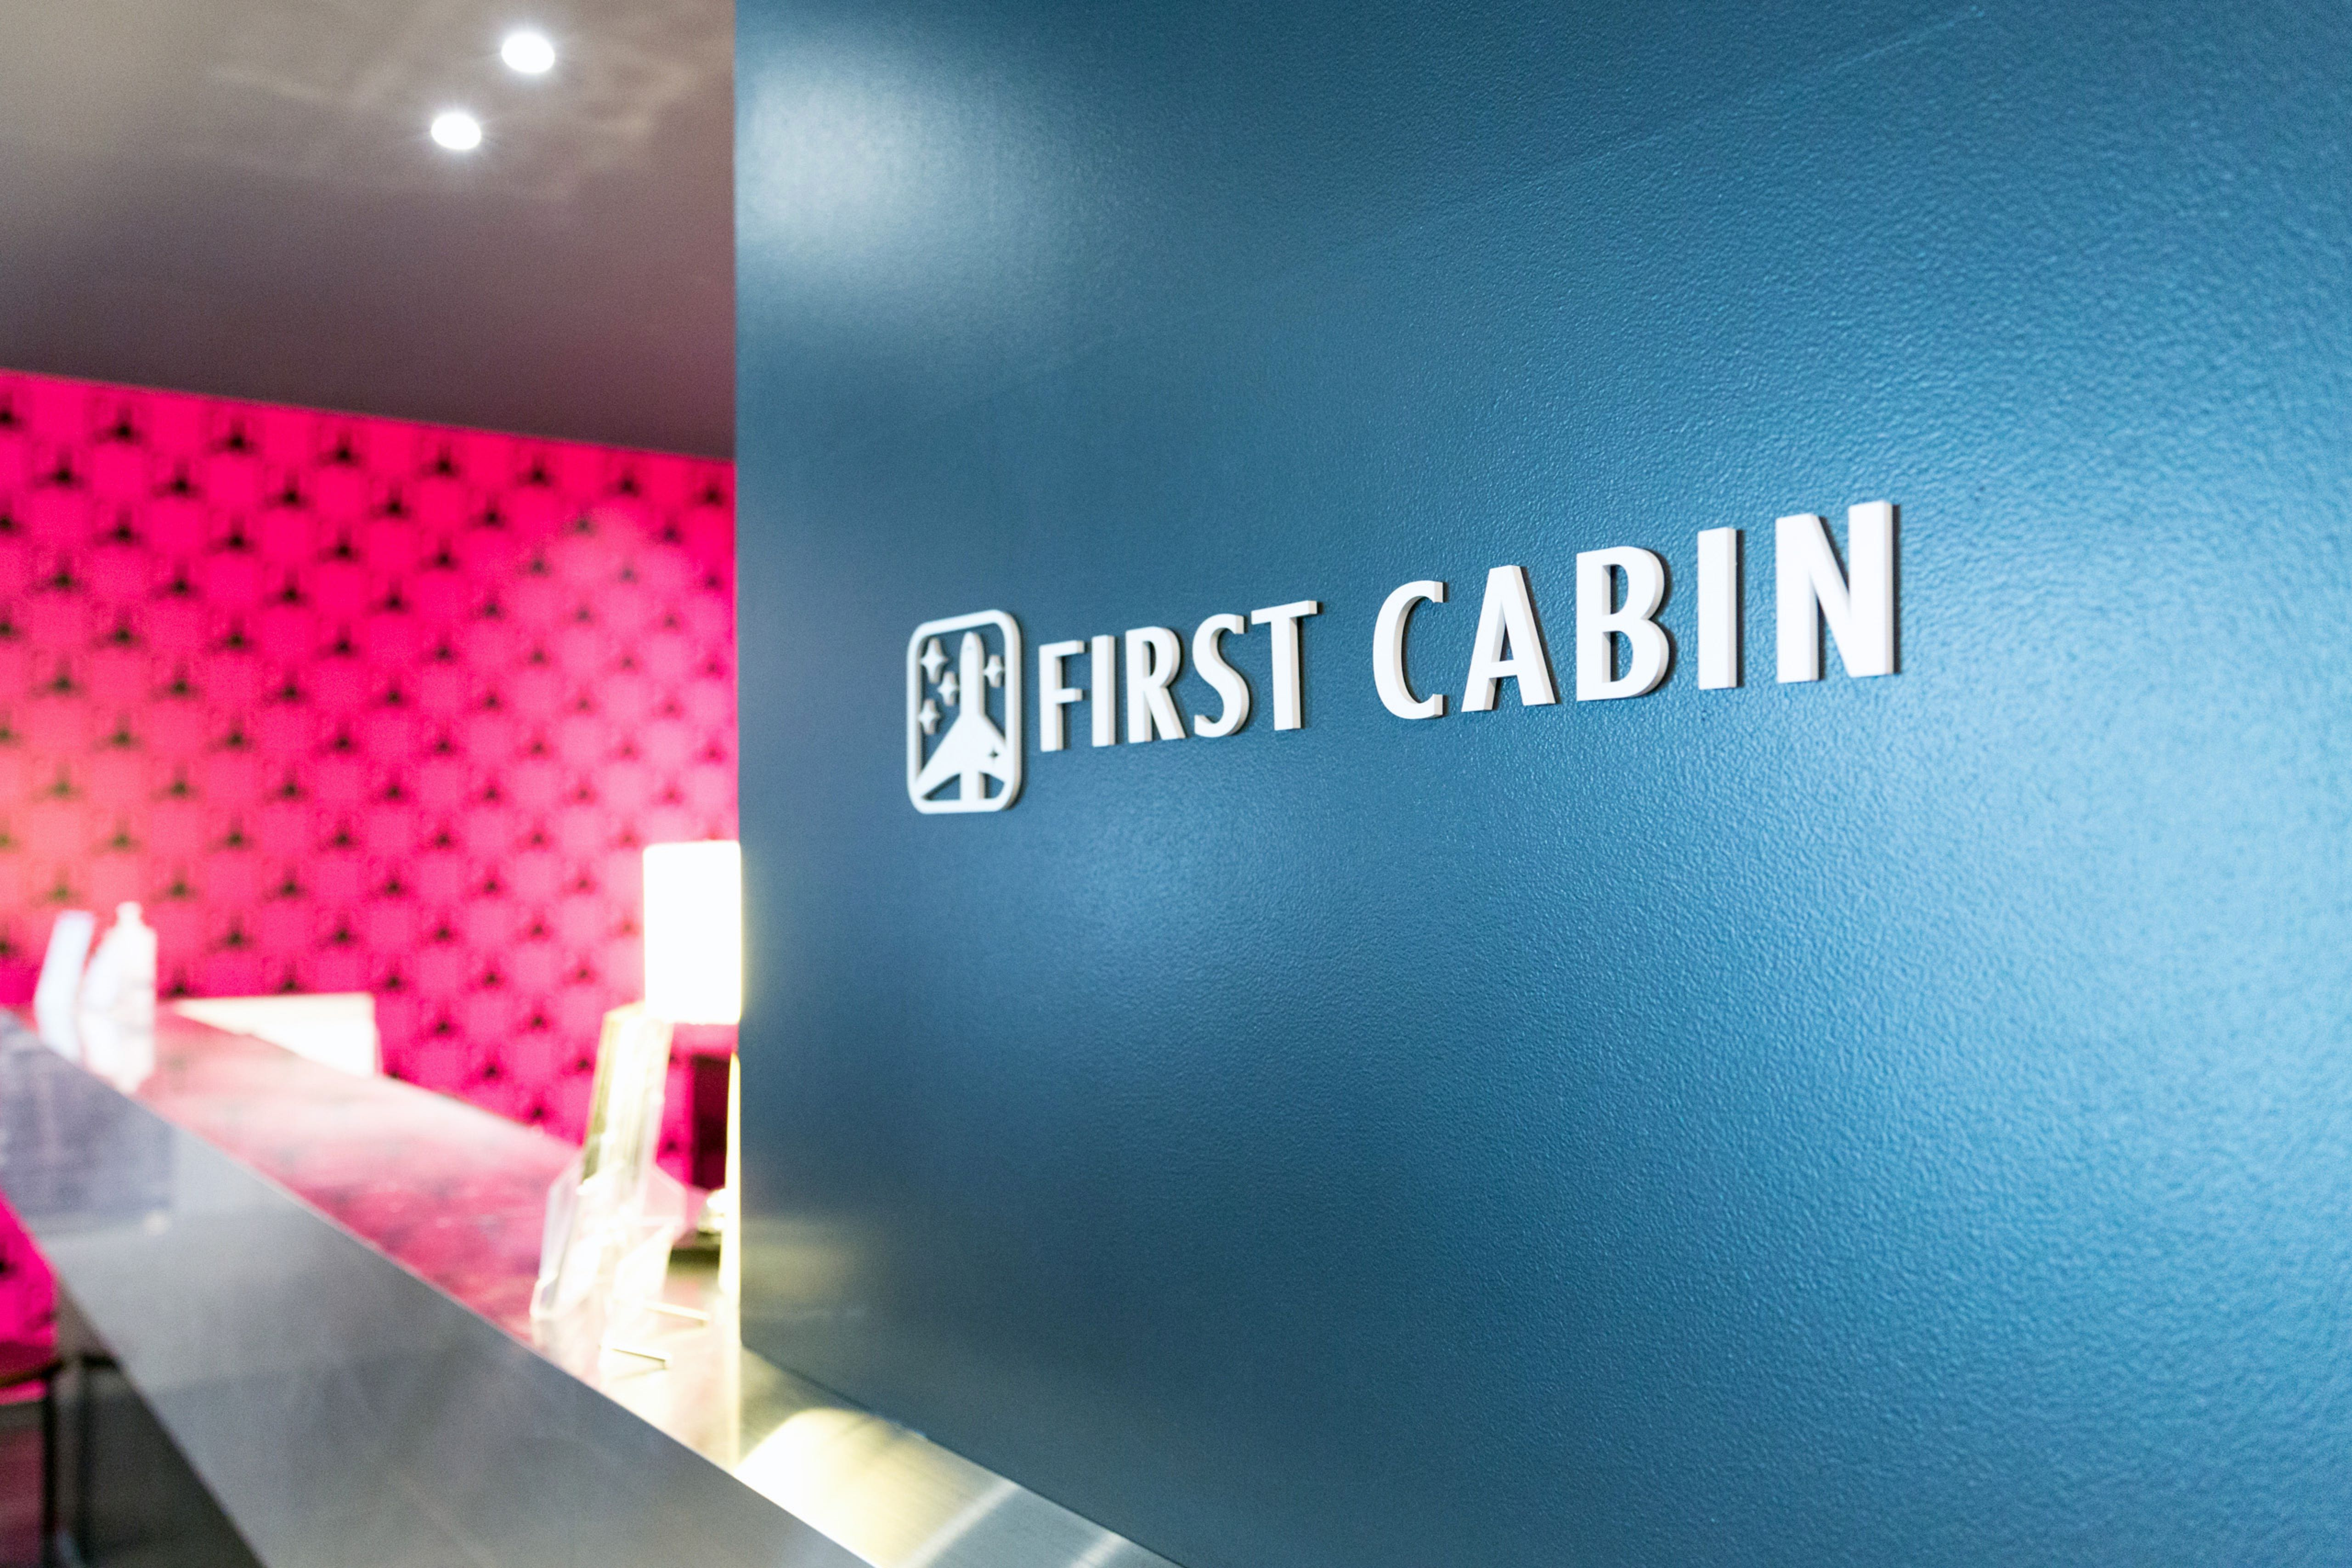 First Cabin Akihabara The Airplane Themed Capsule Hotel